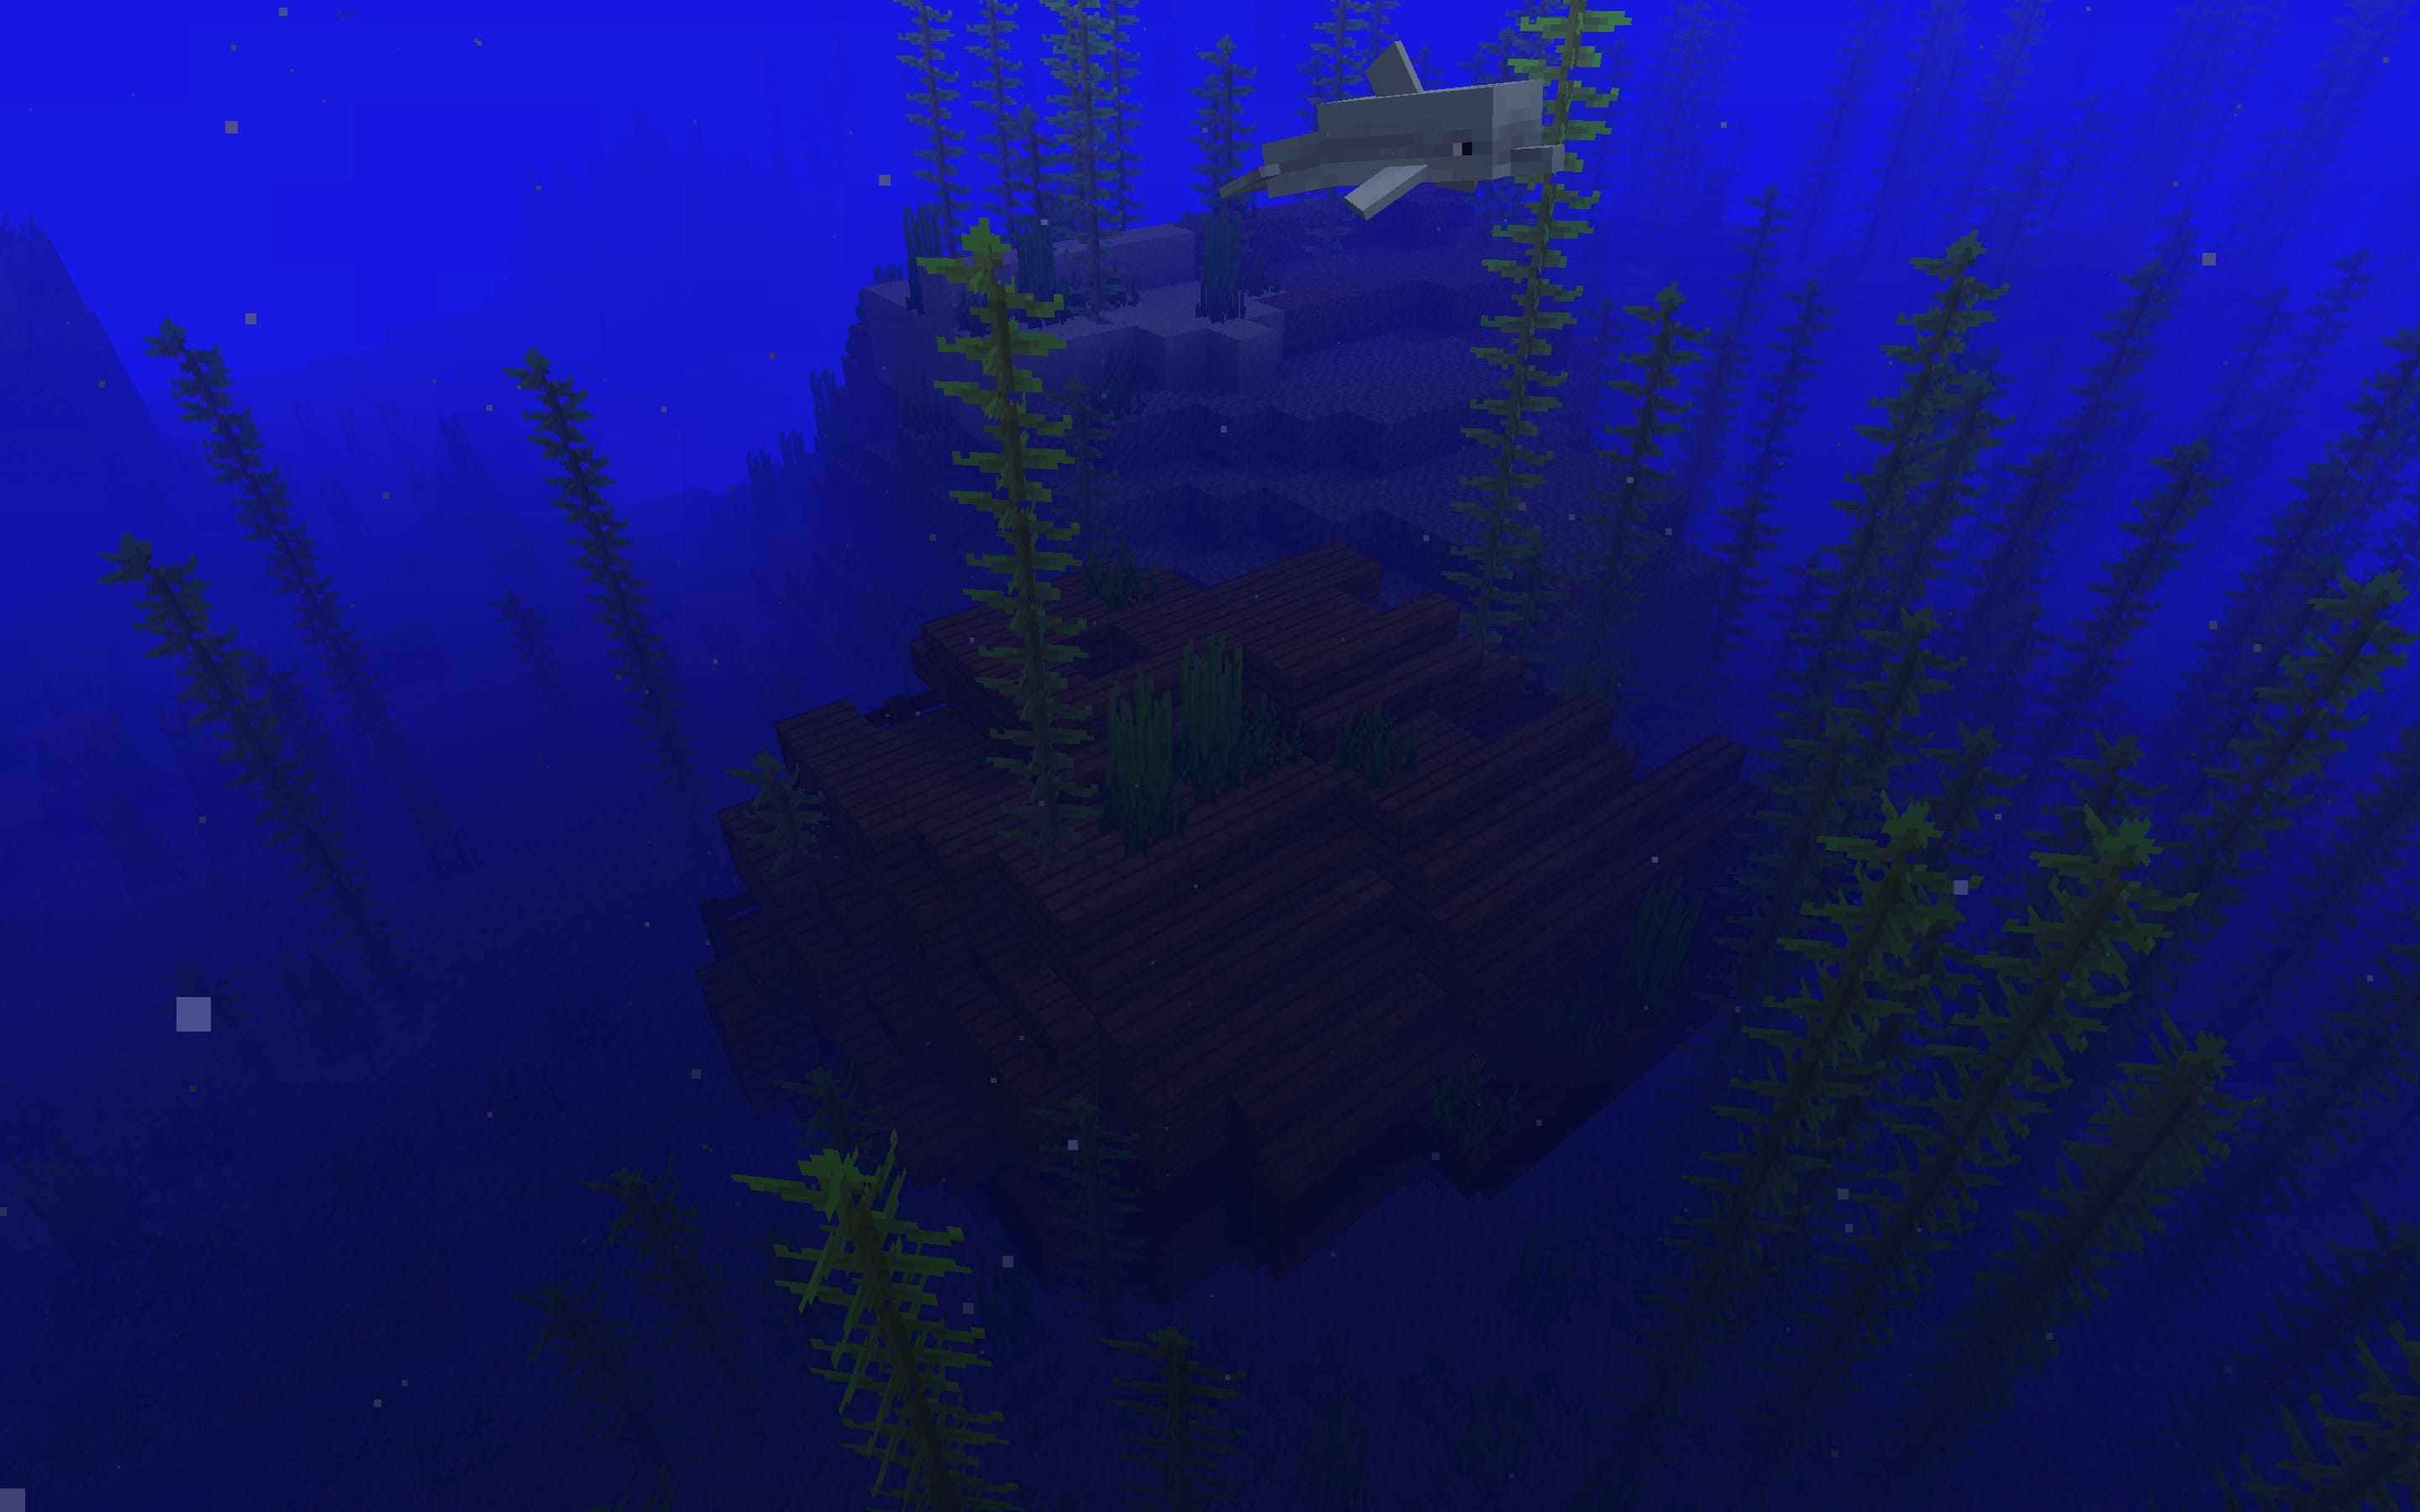 Two Shipwrecks Seed Java Edition Shipwreck Minecraft